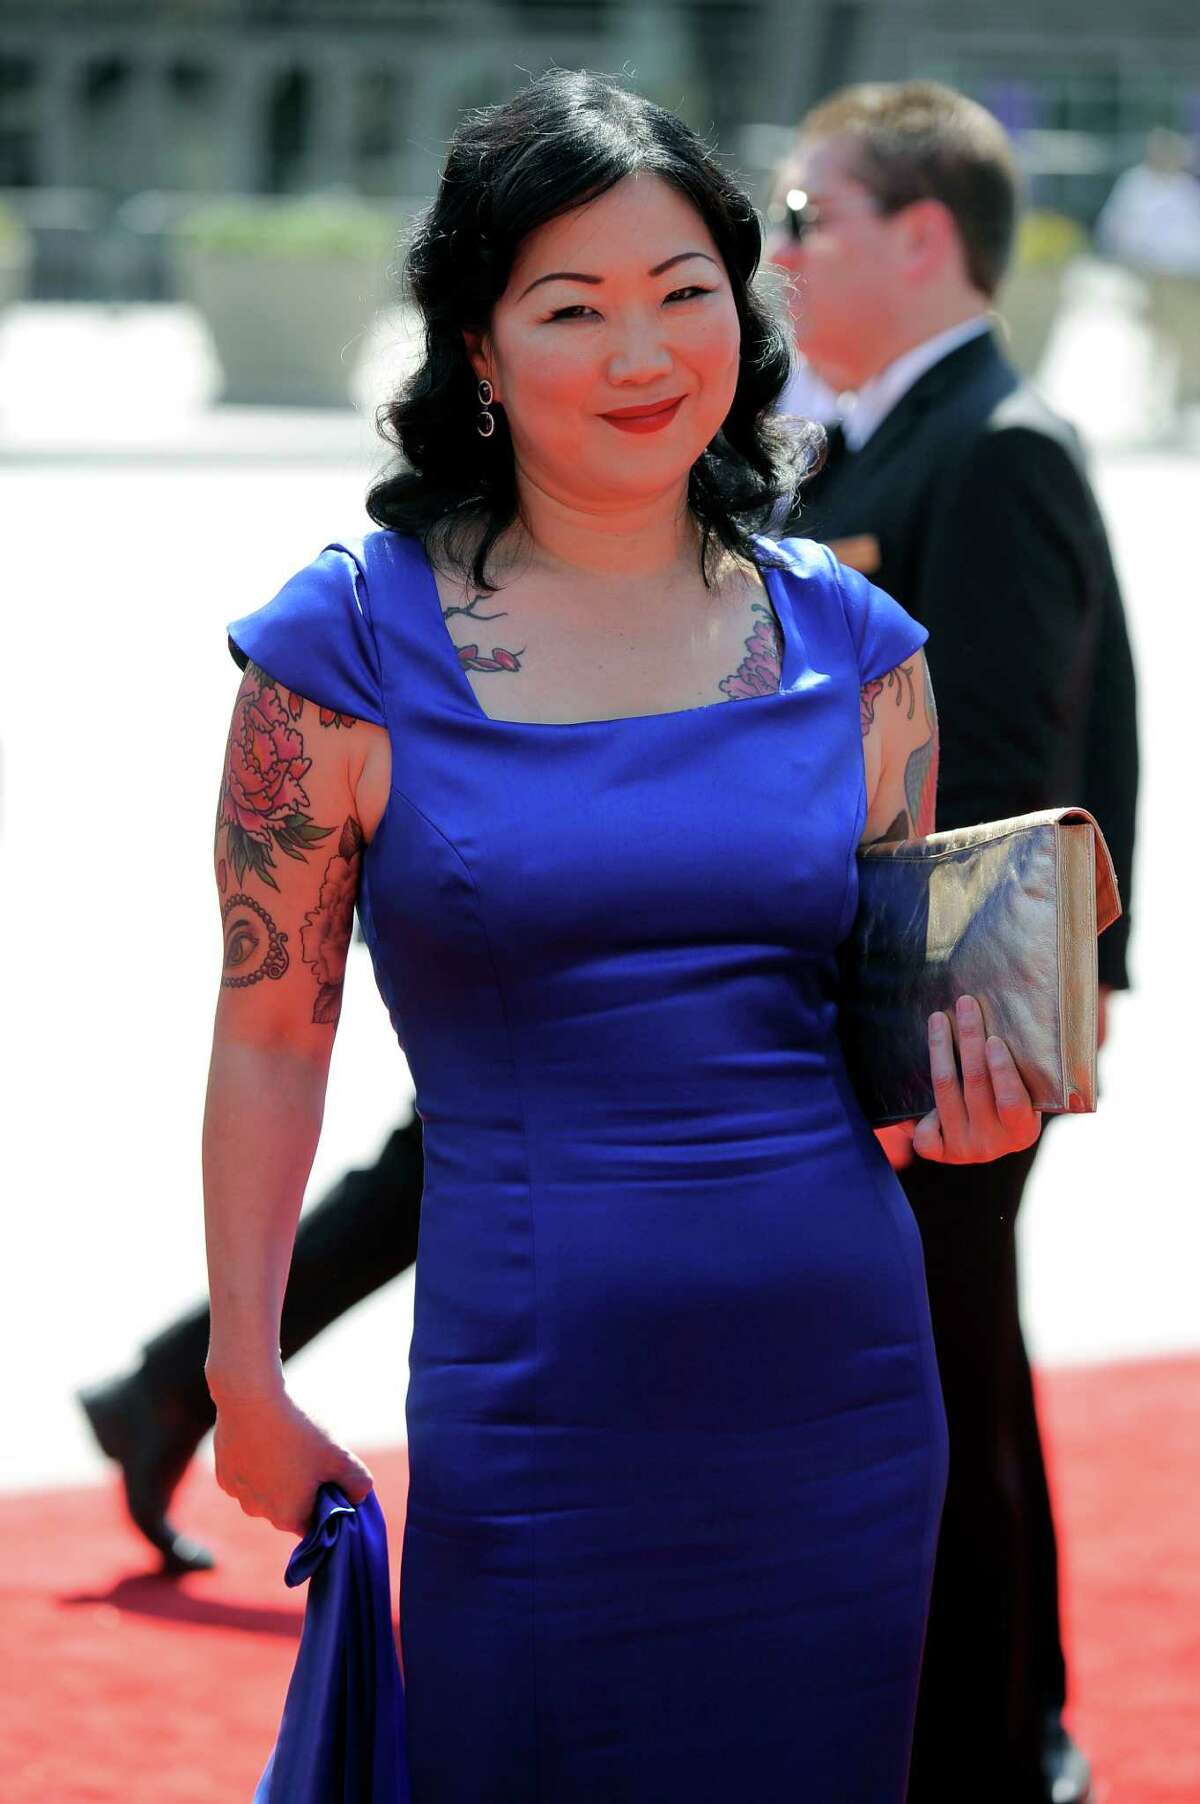 Margaret Cho arrives at the 2012 Creative Arts Emmys at the Nokia Theatre on Saturday, Sept. 15, 2012, in Los Angeles. (Photo by Chris Pizzello/Invision/AP)